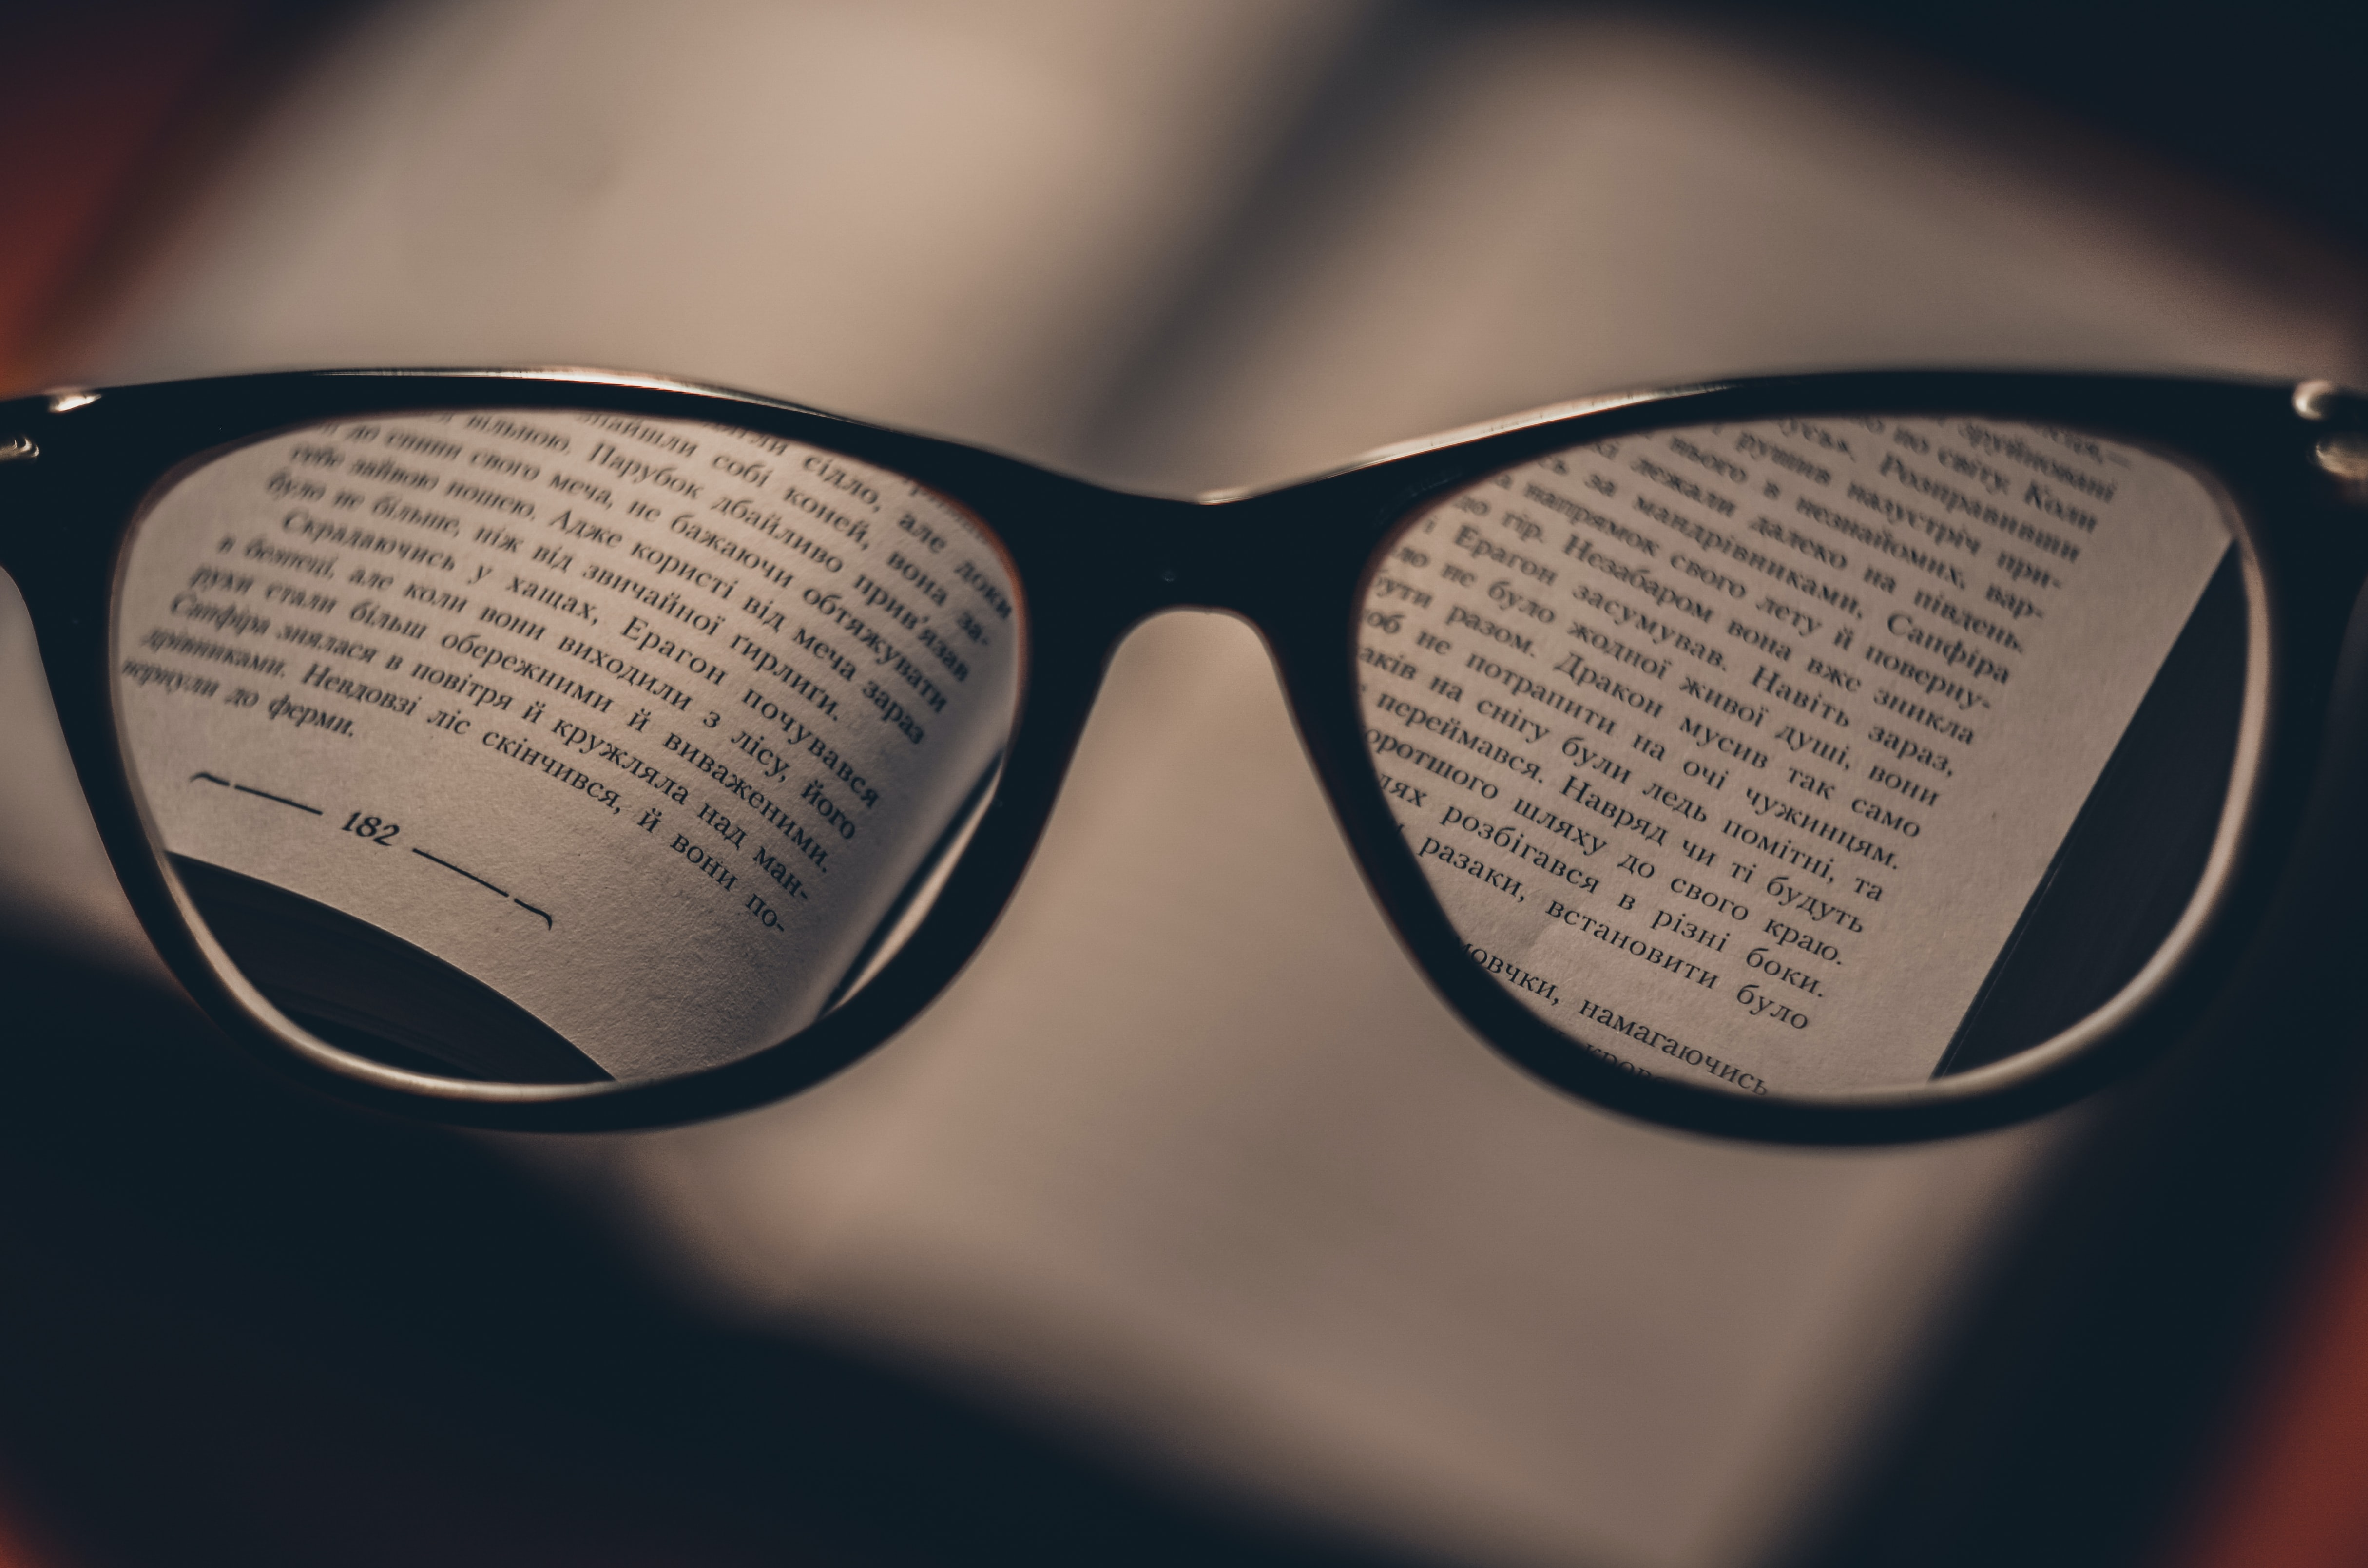 Reading glasses in front of a book